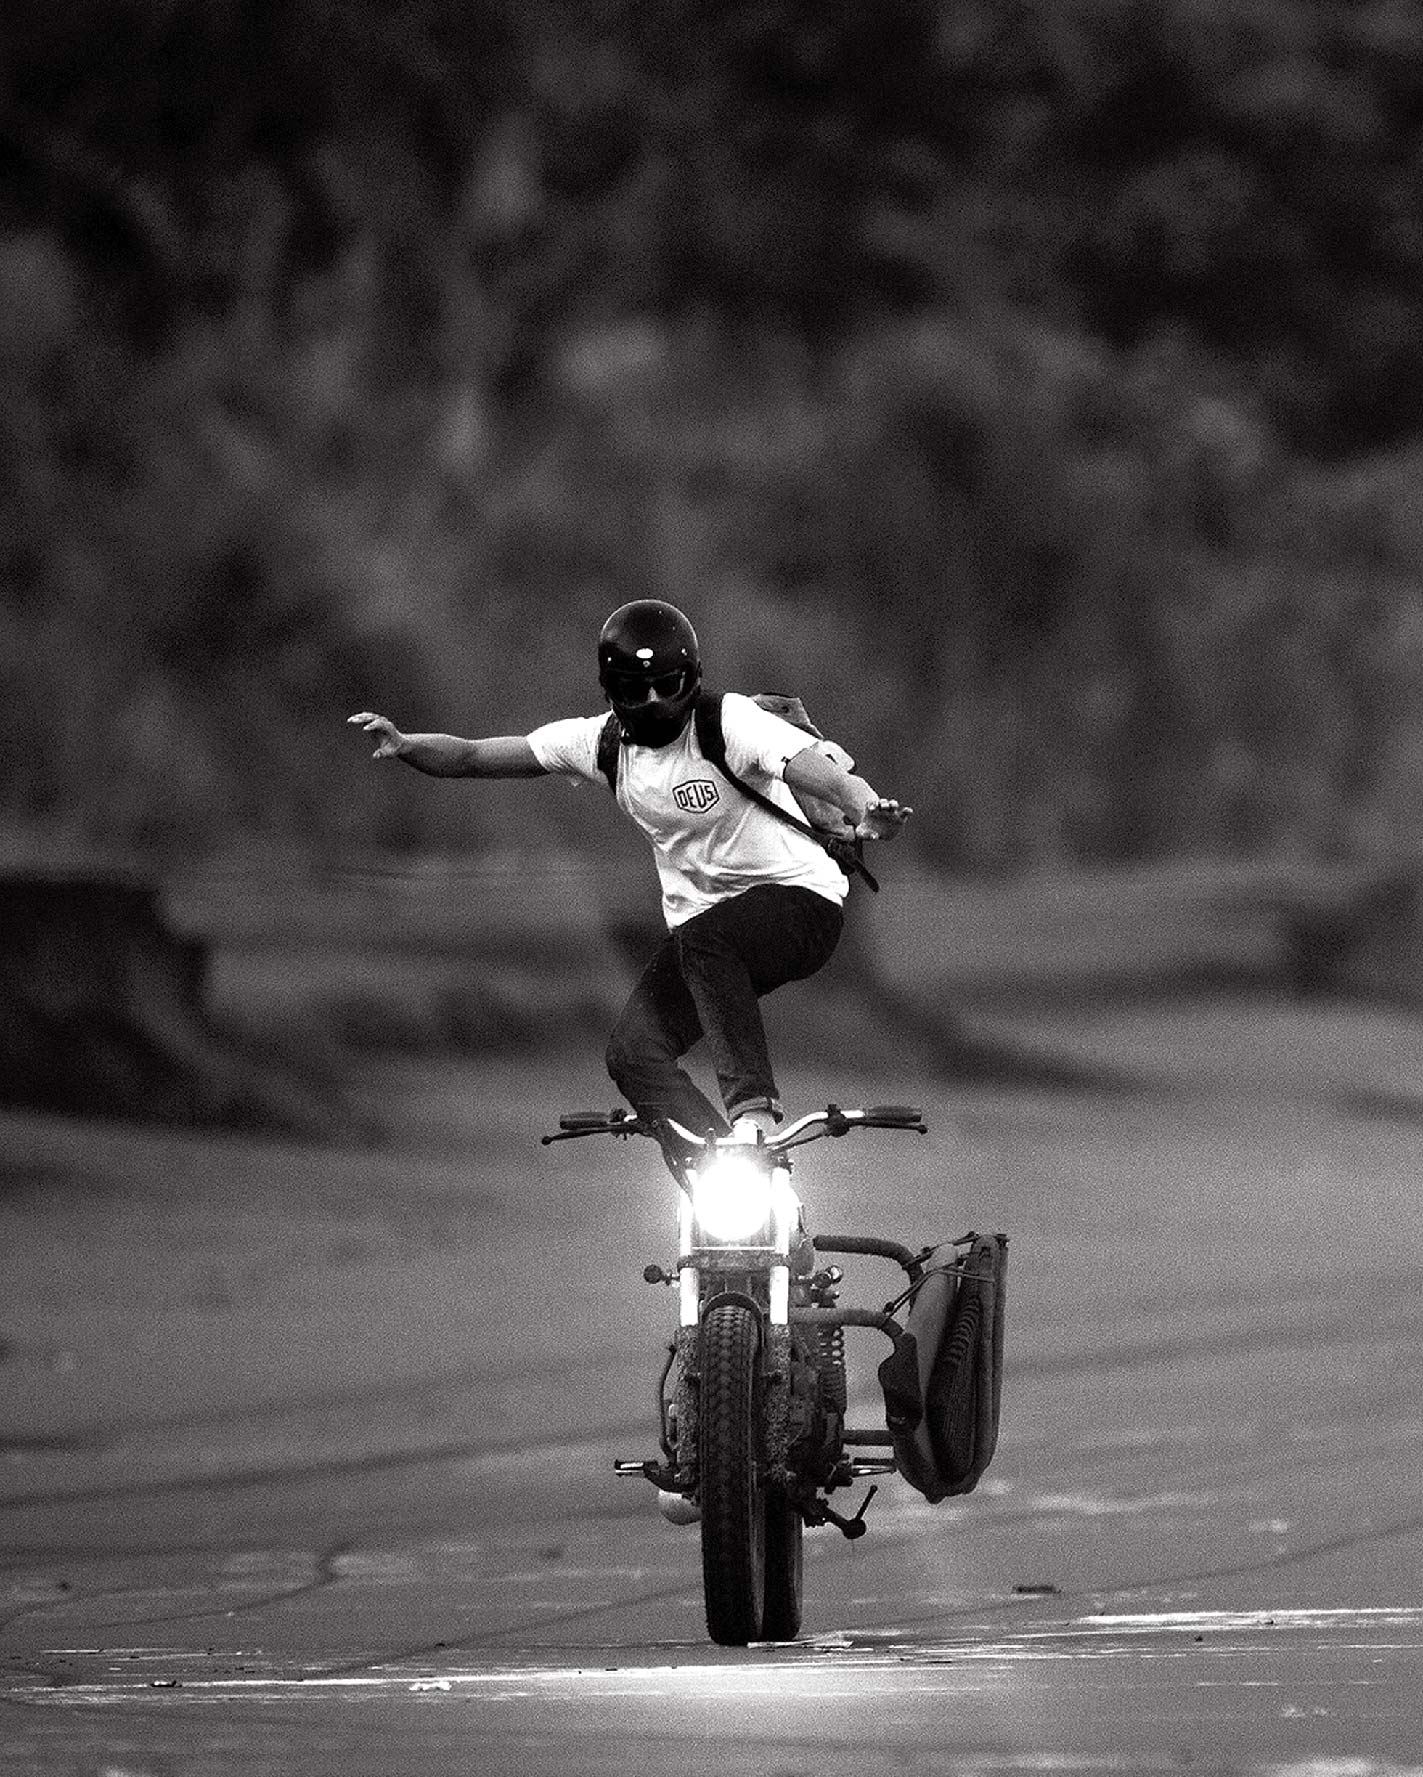 Deus Ex Machina. Photography by Anthony Dodds